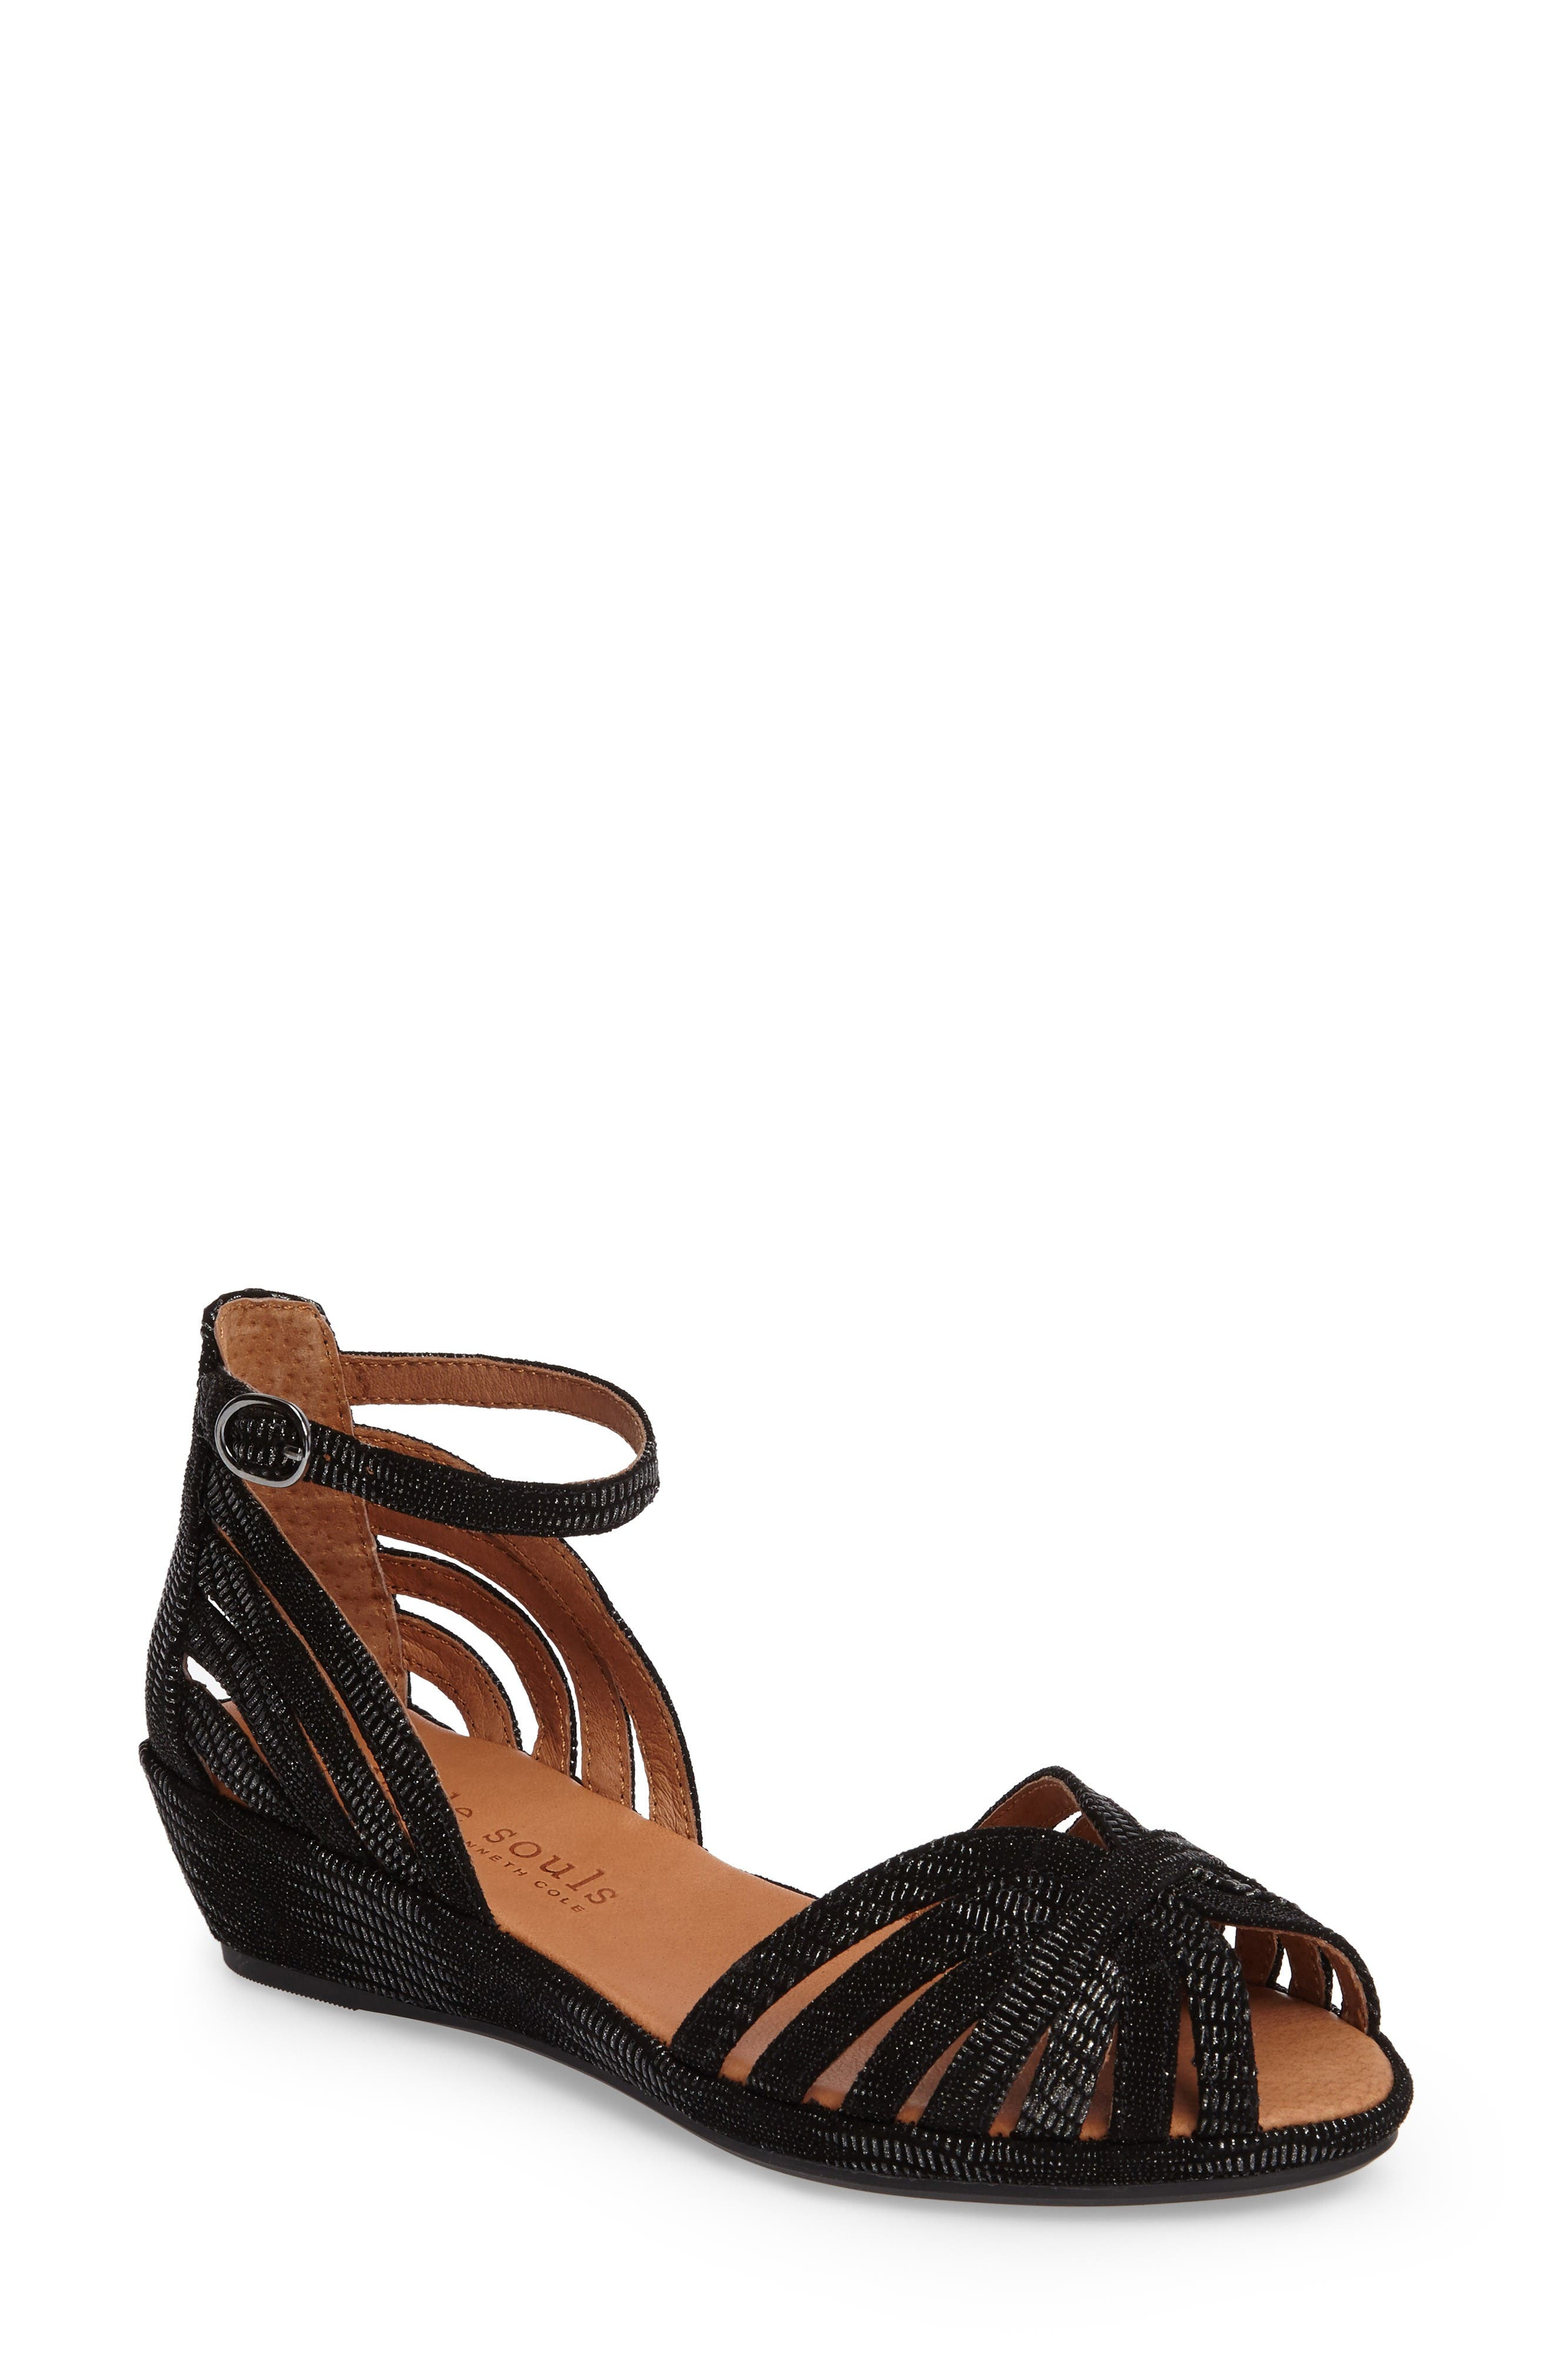 by Kenneth Cole 'Leah' Peep Toe Wedge Sandal,                         Main,                         color, Black/ Black Leather